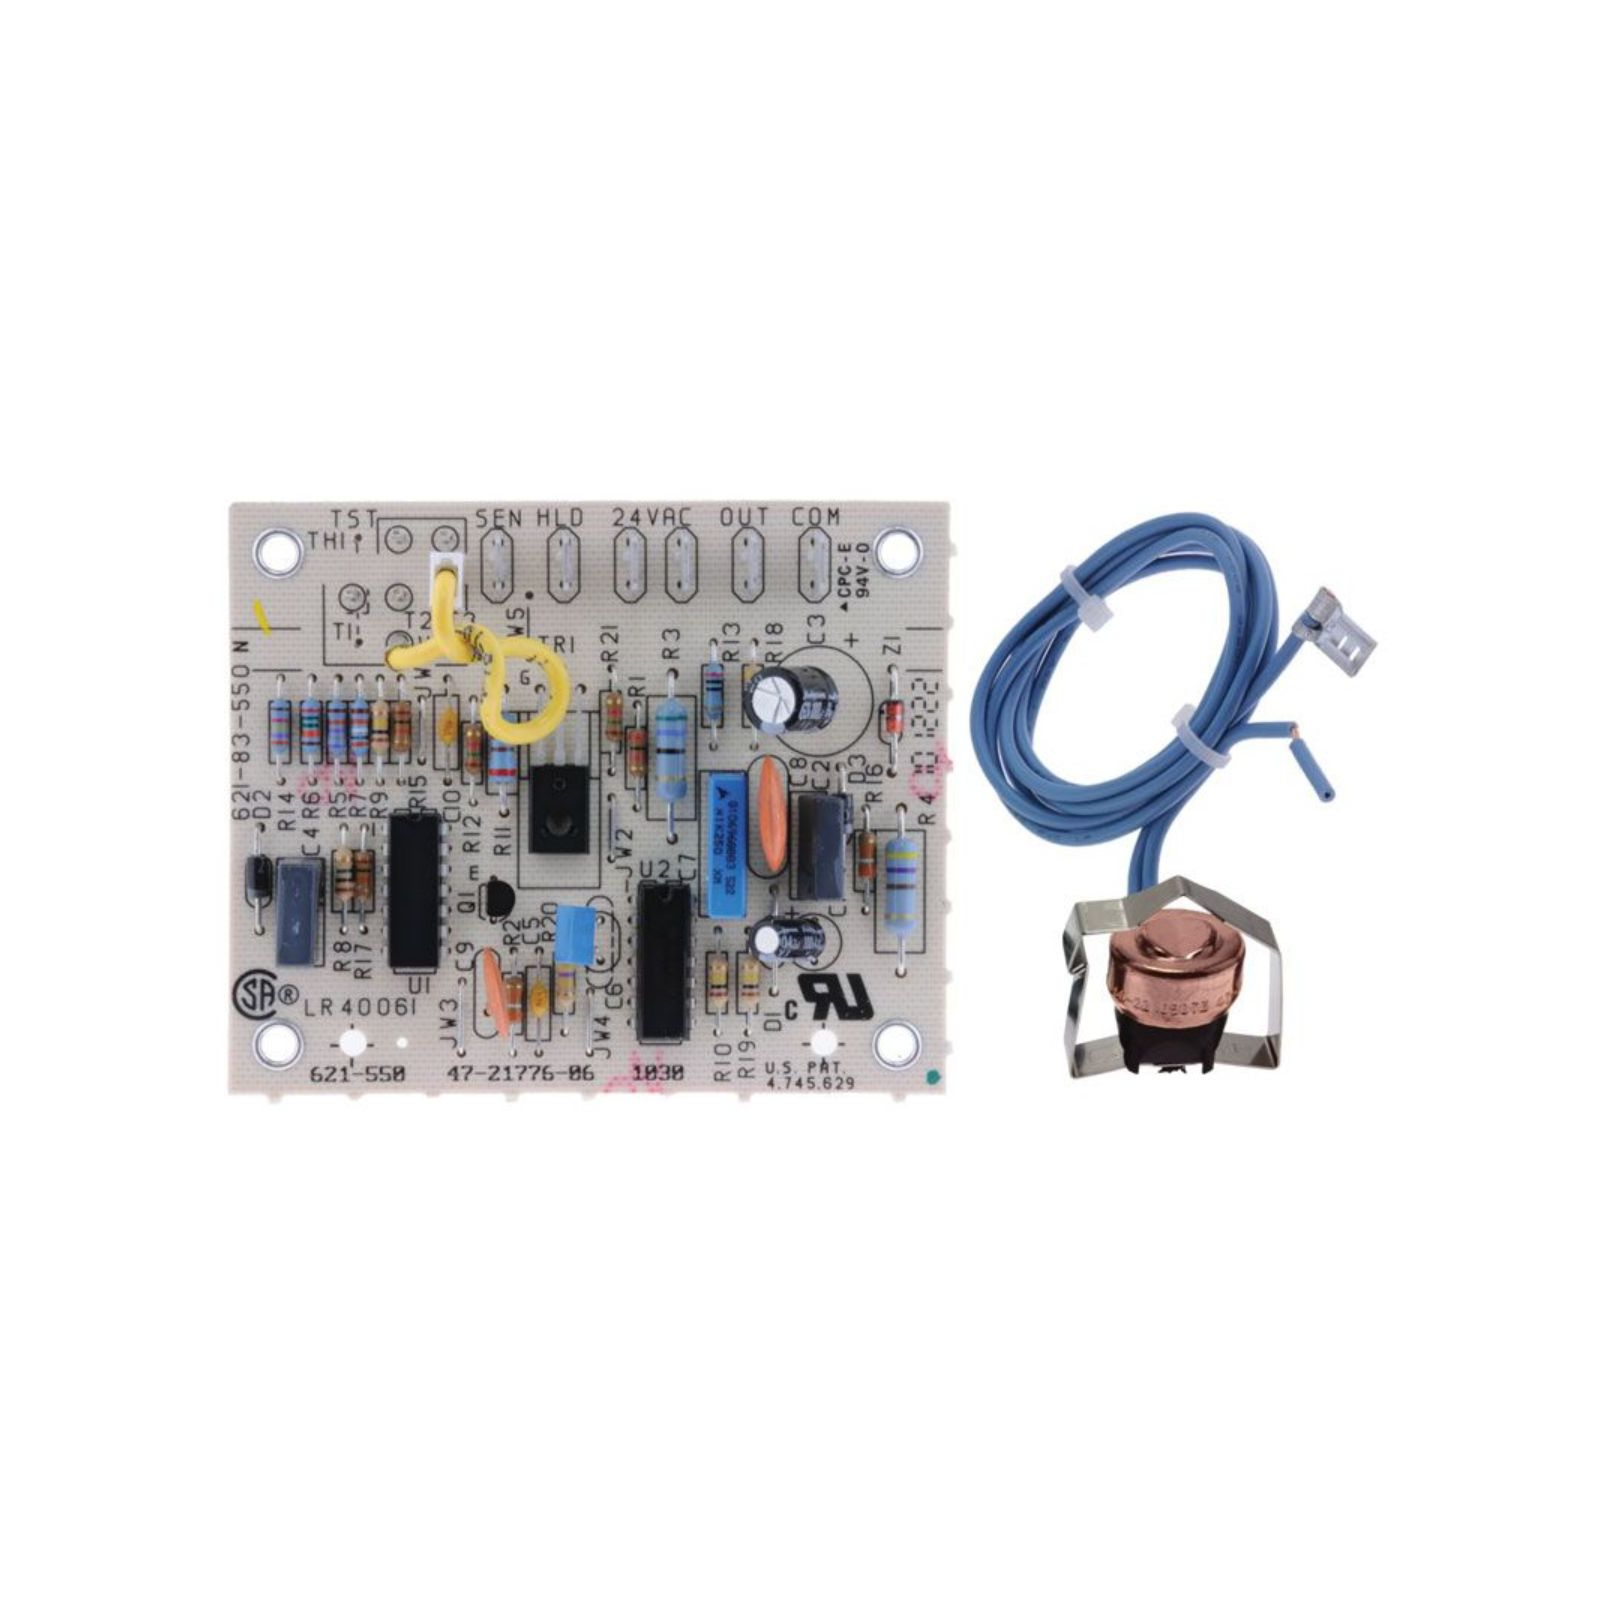 PROTECH 47-21776-86 - Defrost Control Board